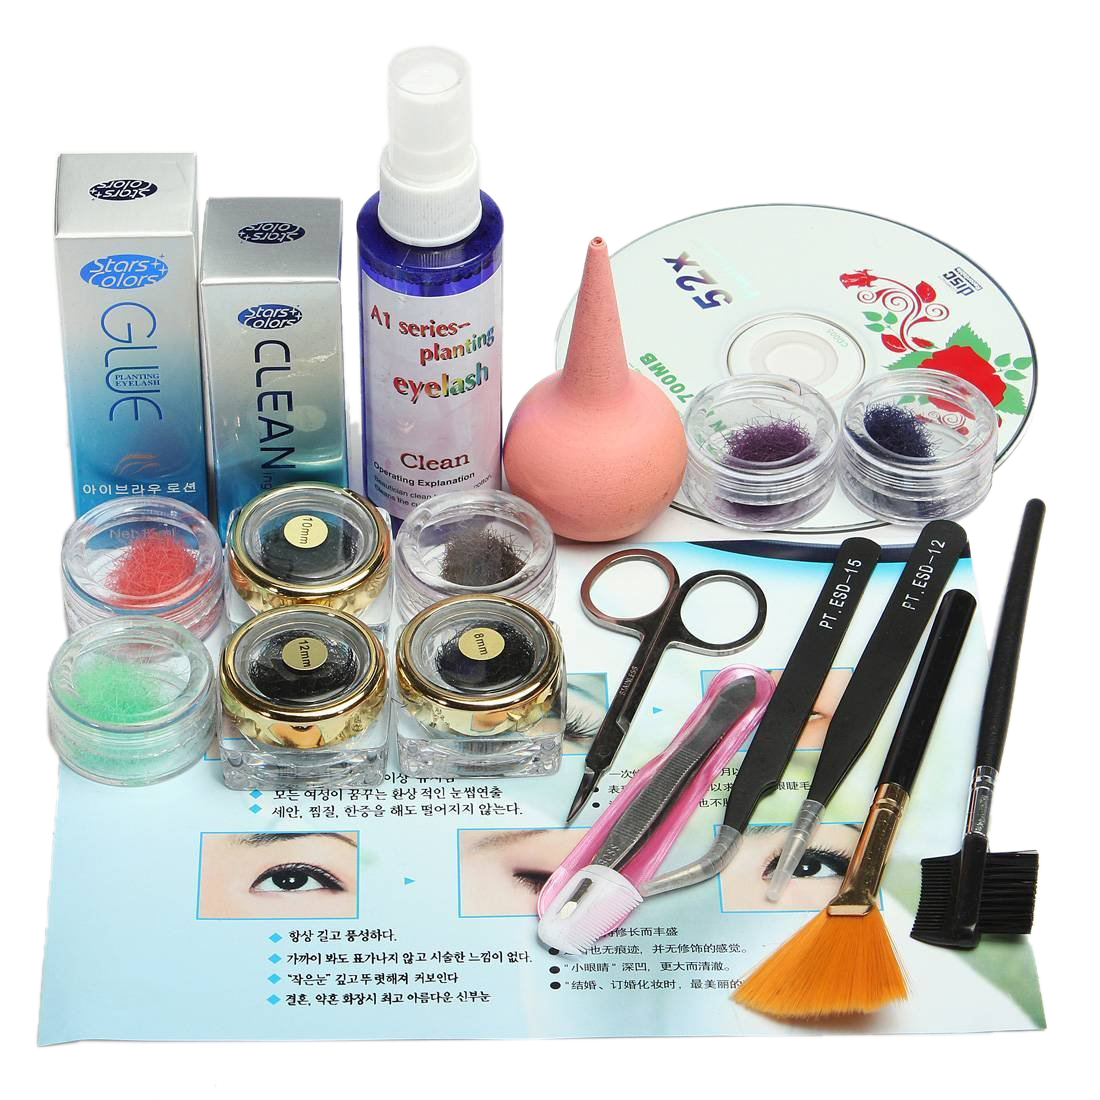 Professional False Eyelash Extension Cosmetic Makeup Kit Set with Case Salon Tool Gift new fashion professional high quality false extension eyelash glue brush kit set with box case salon tool 4